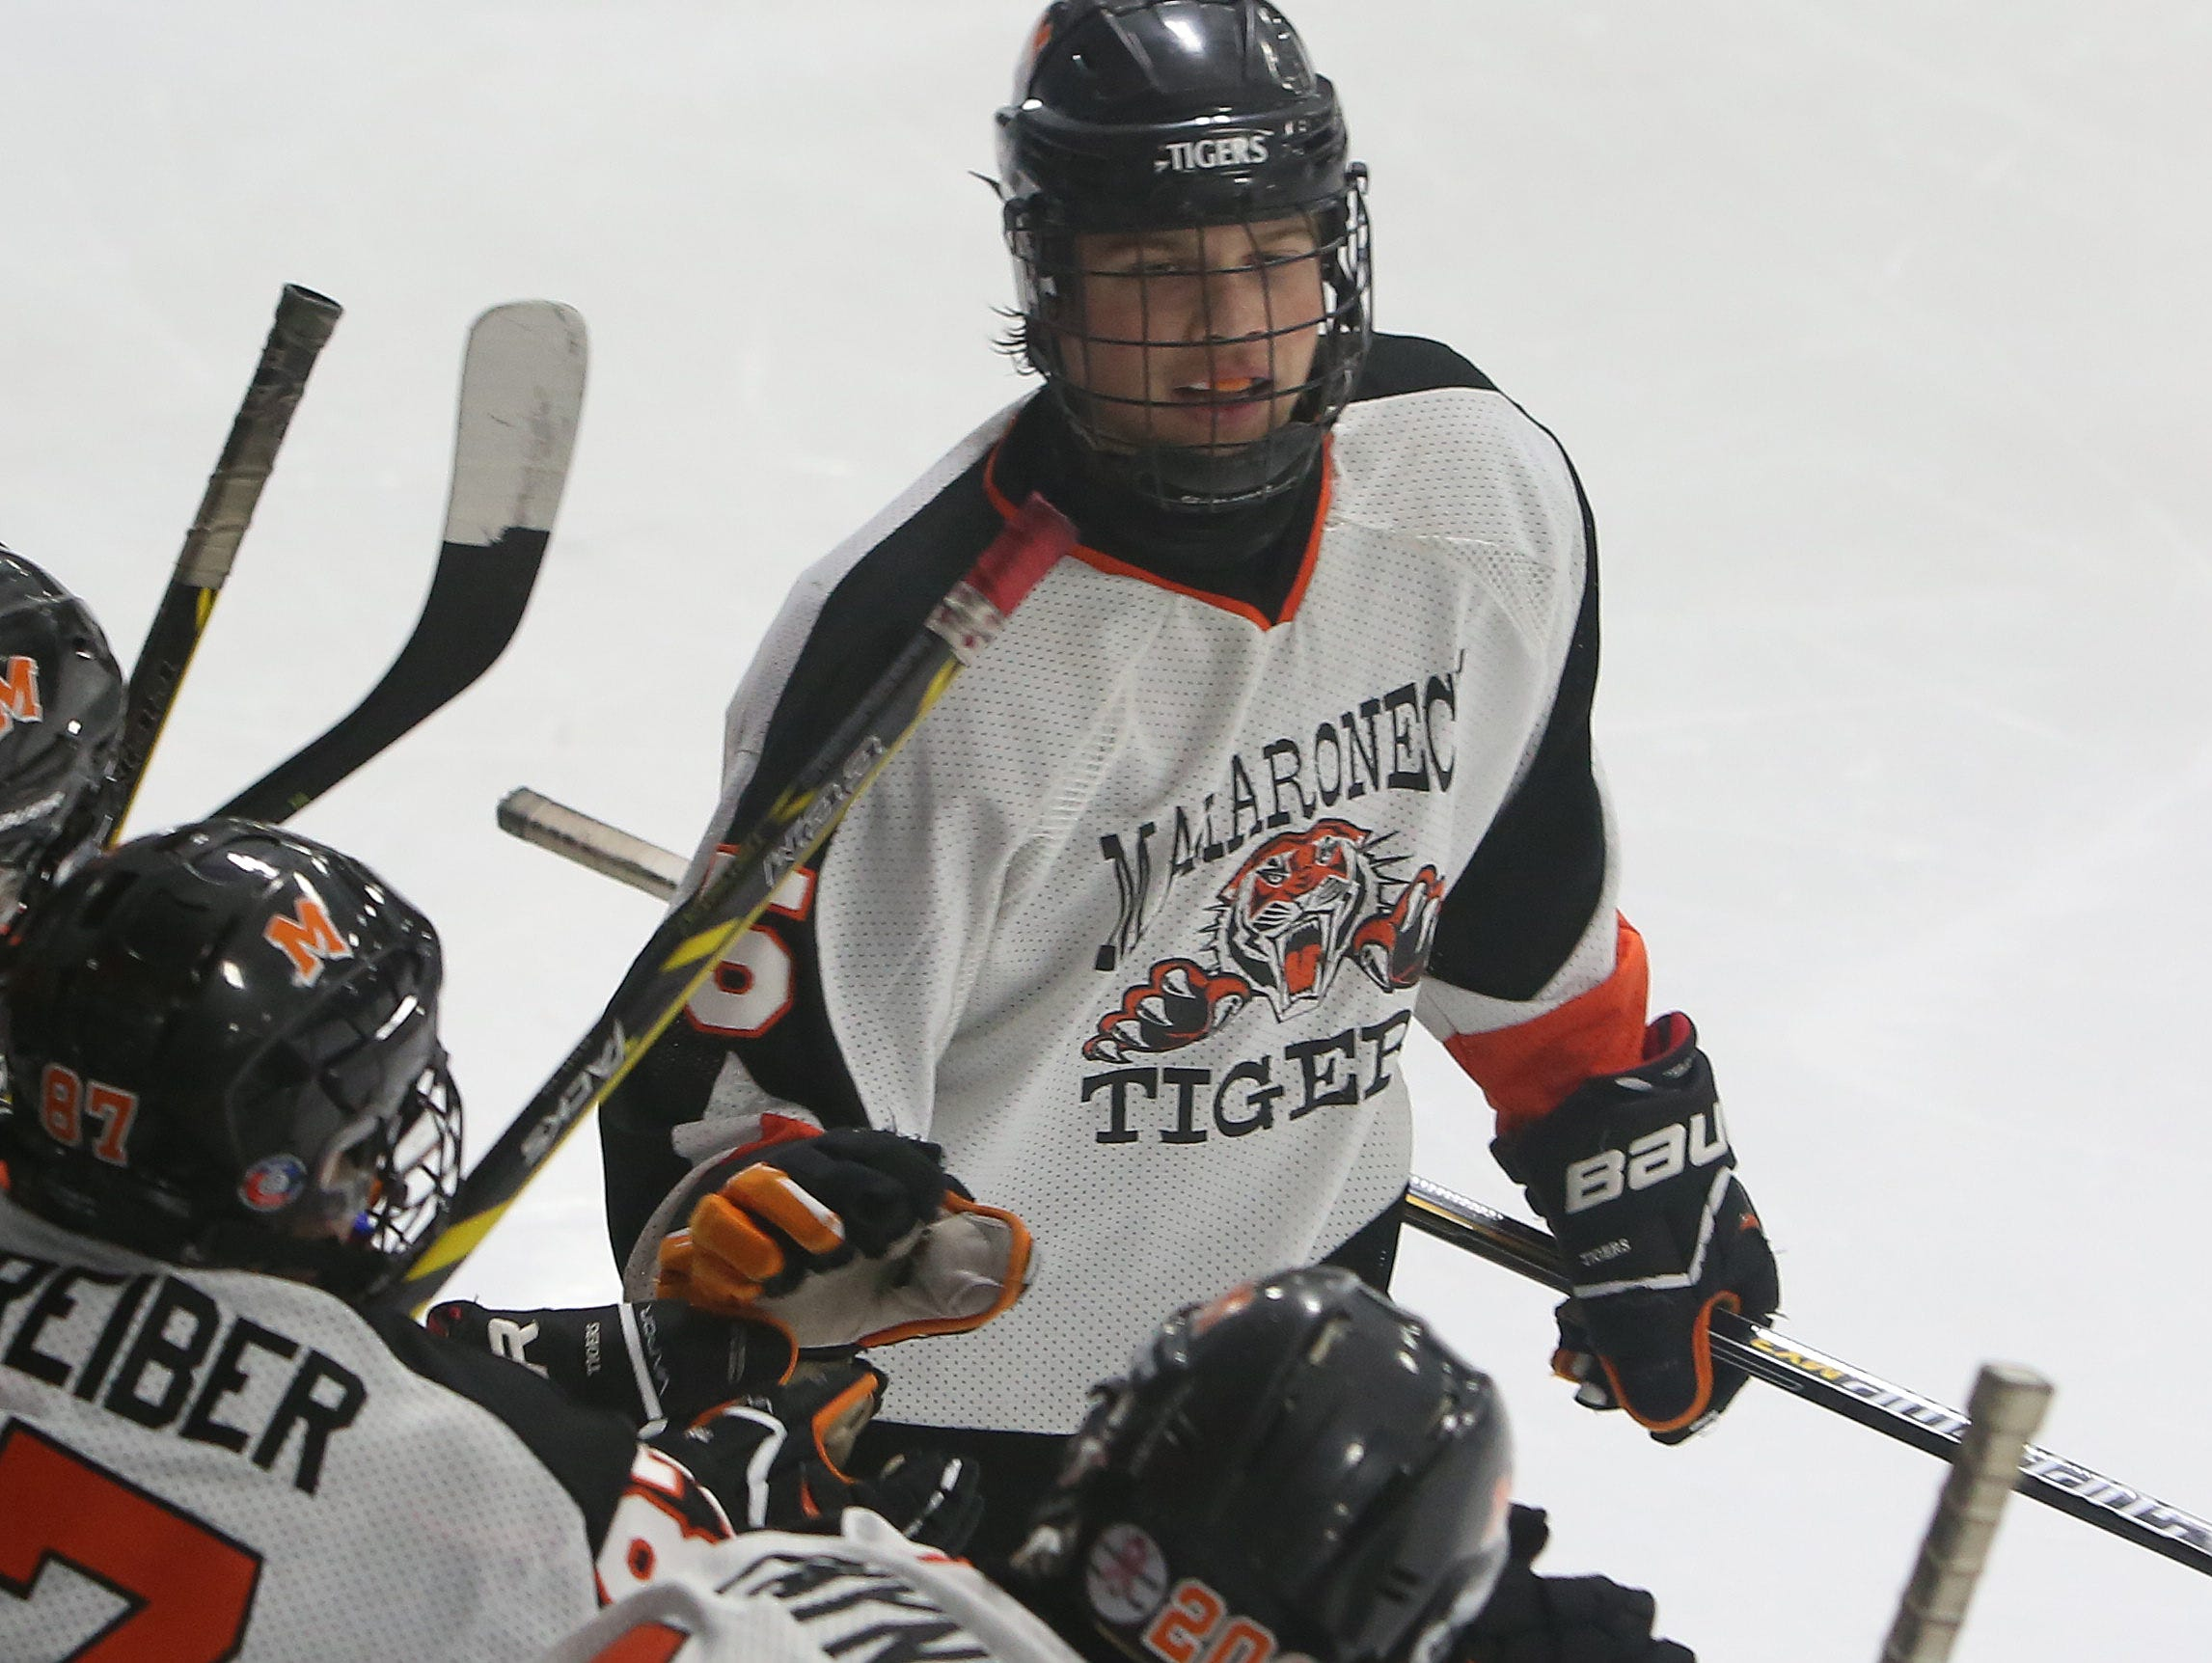 Mamaroneck's Jake Levine (5) celebrates with teammates after his third period goal against Clarkstown during hockey action at Hommocks Park Ice Rink in Mamaroneck Dec. 22, 2015. Mamaroneck won the game 3-0.